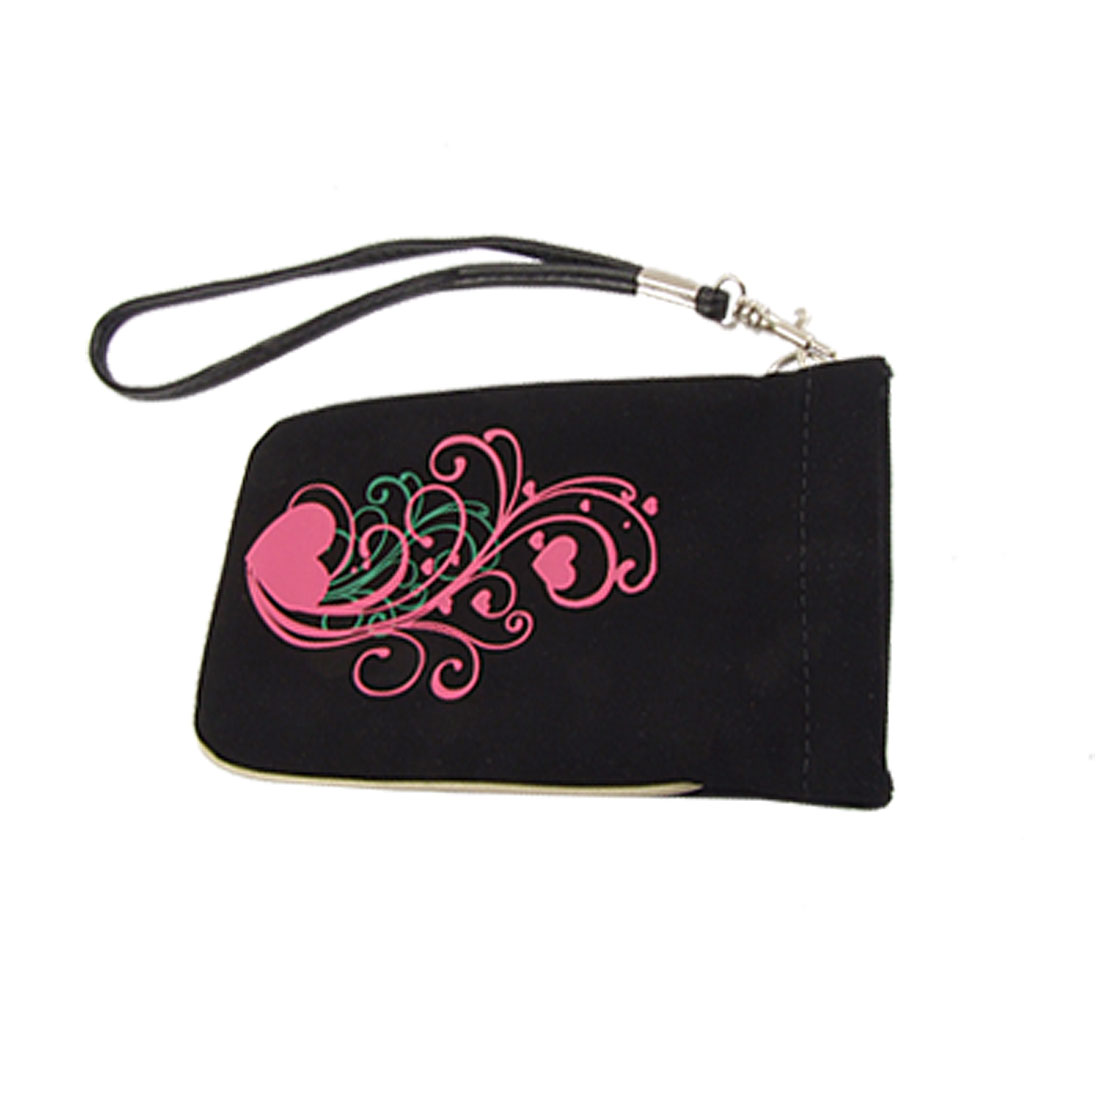 Fuchsia Heart Black Faux Suede Pouch w Hand Strap for iPhone 4 4G